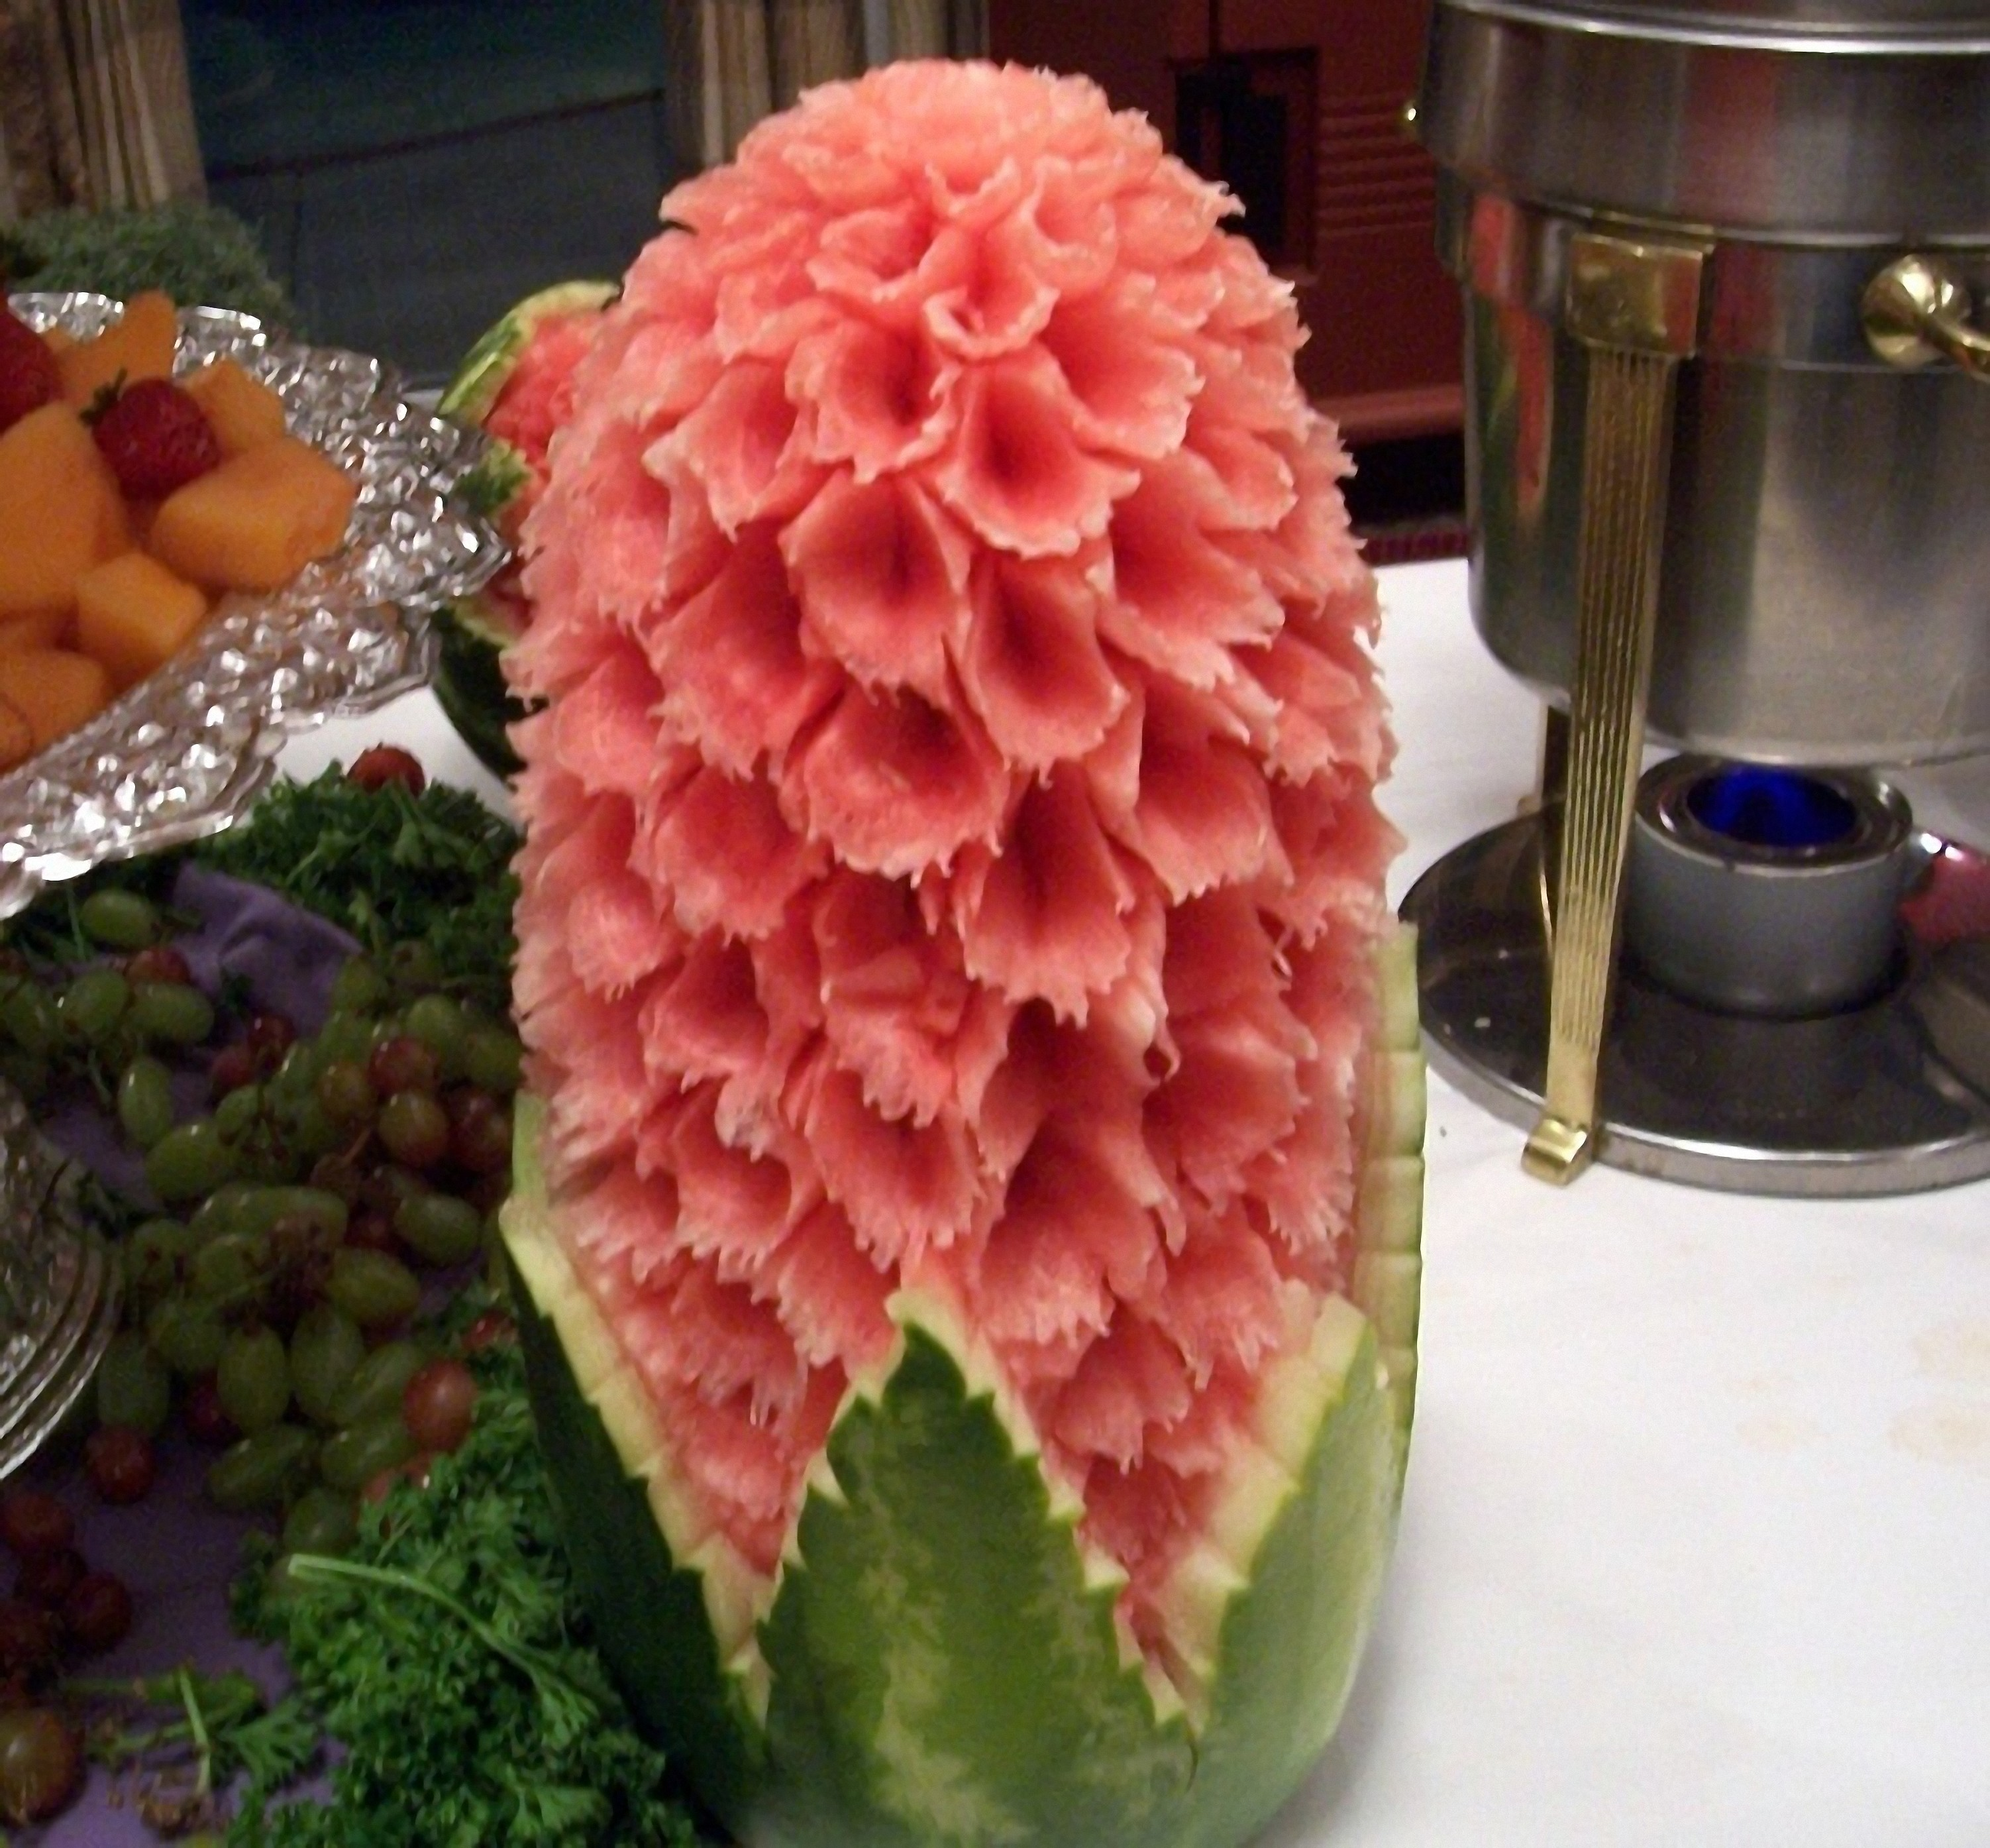 Watermelon-Carving-3(02)